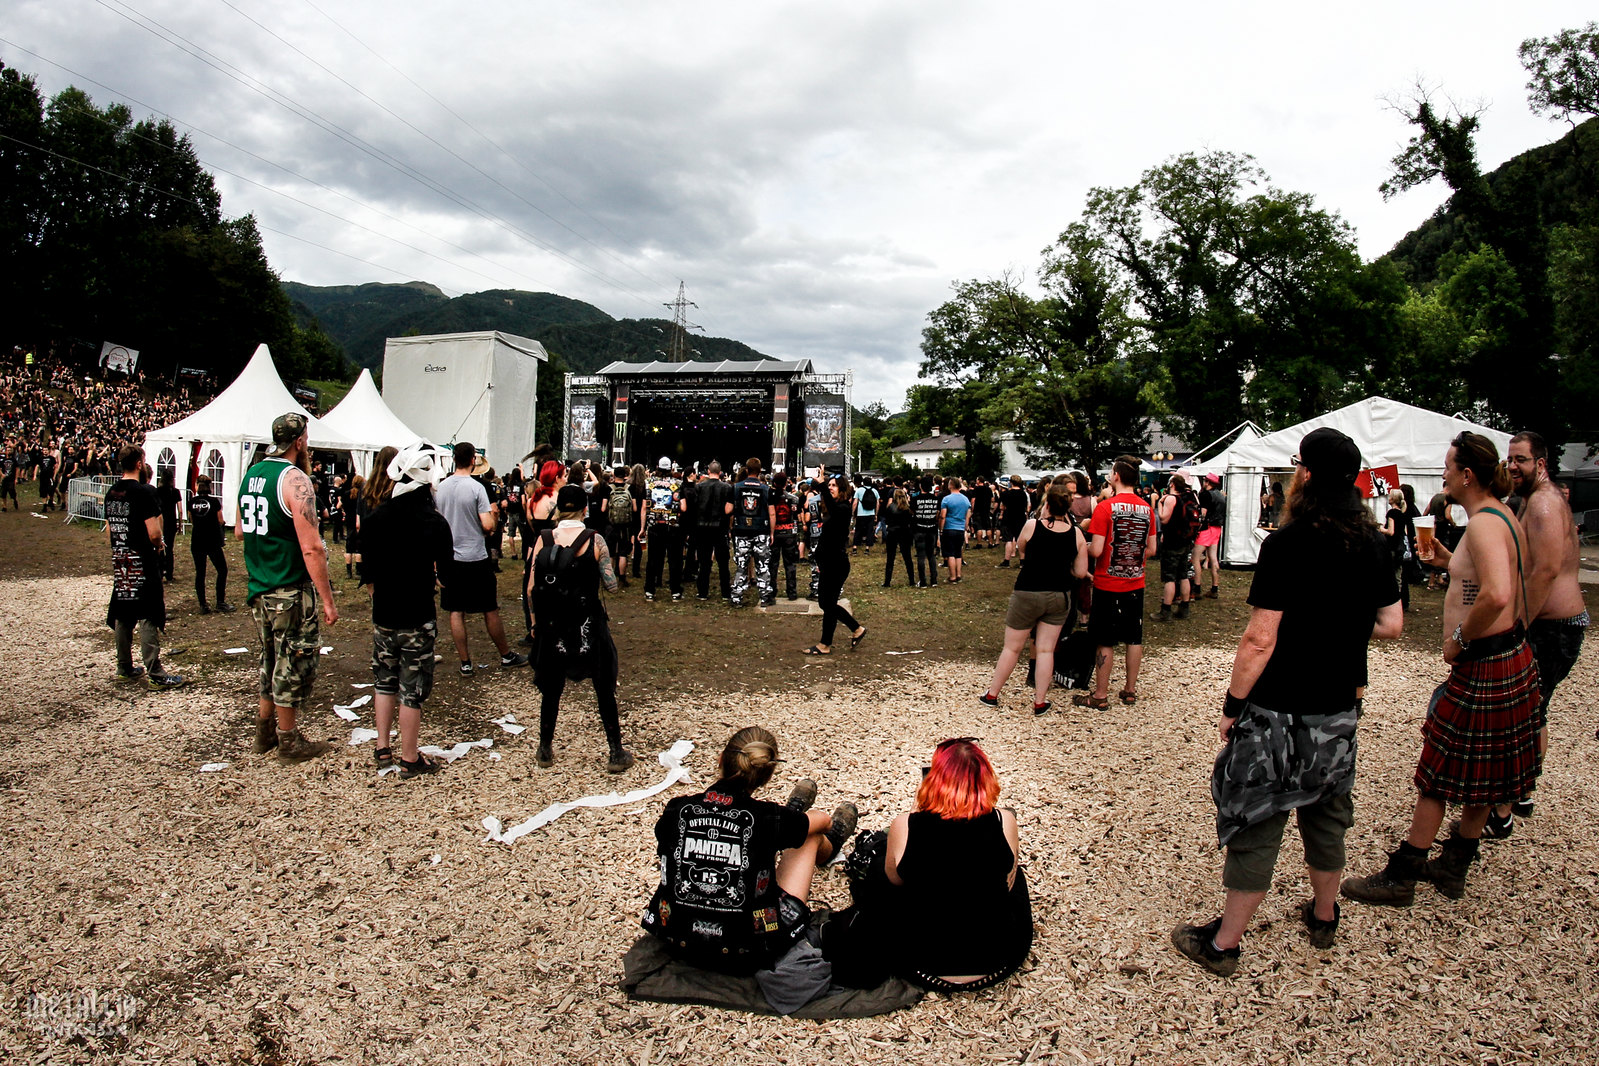 metaldays 2017, metaldays, tolmin, slovenia, metal festivals in europe